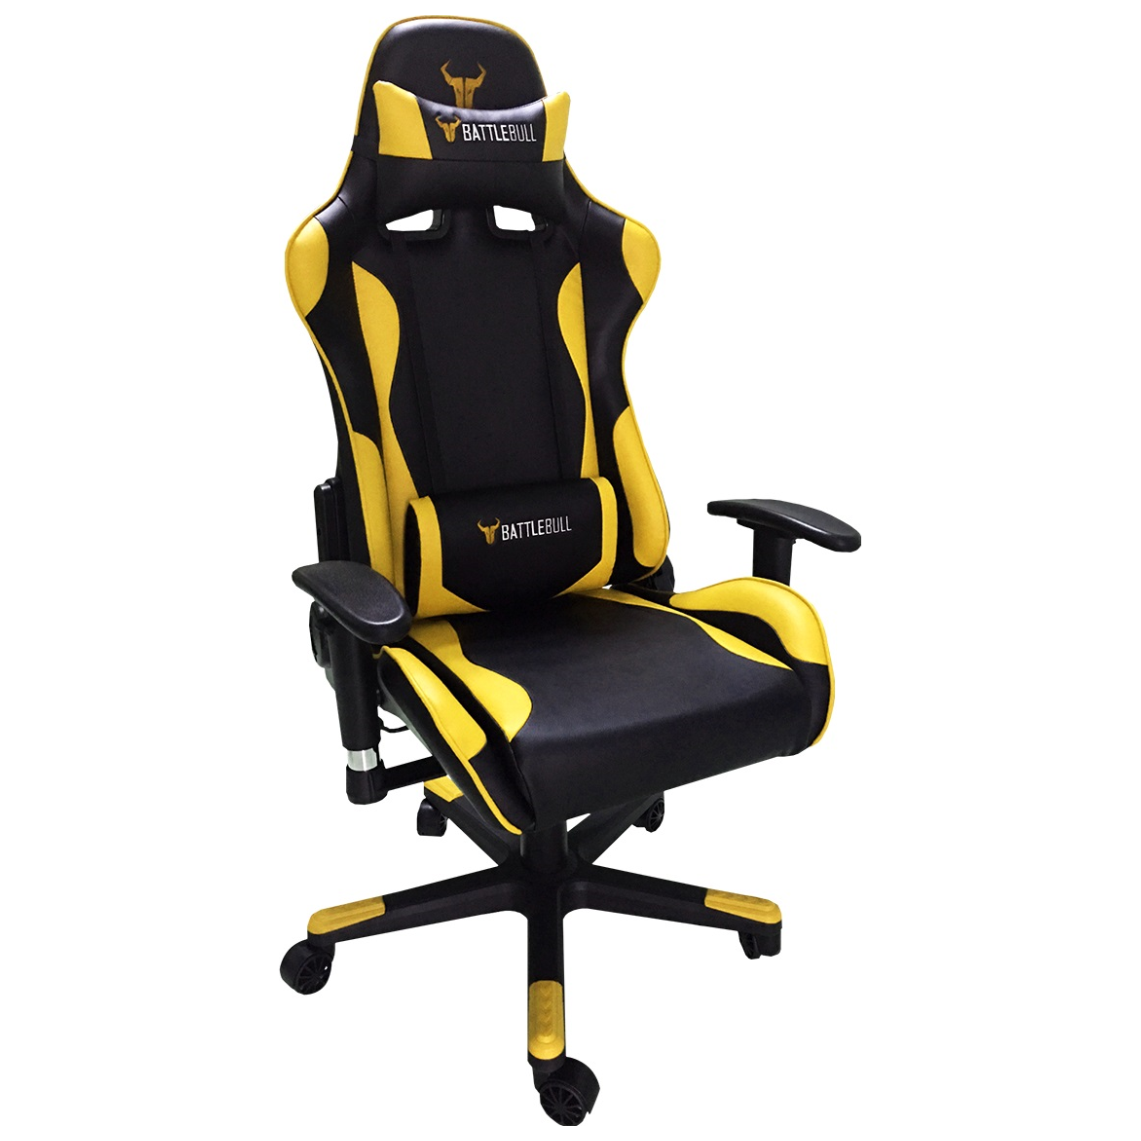 Battlebull Combat Gaming Chair Black Yellow Bb 620961